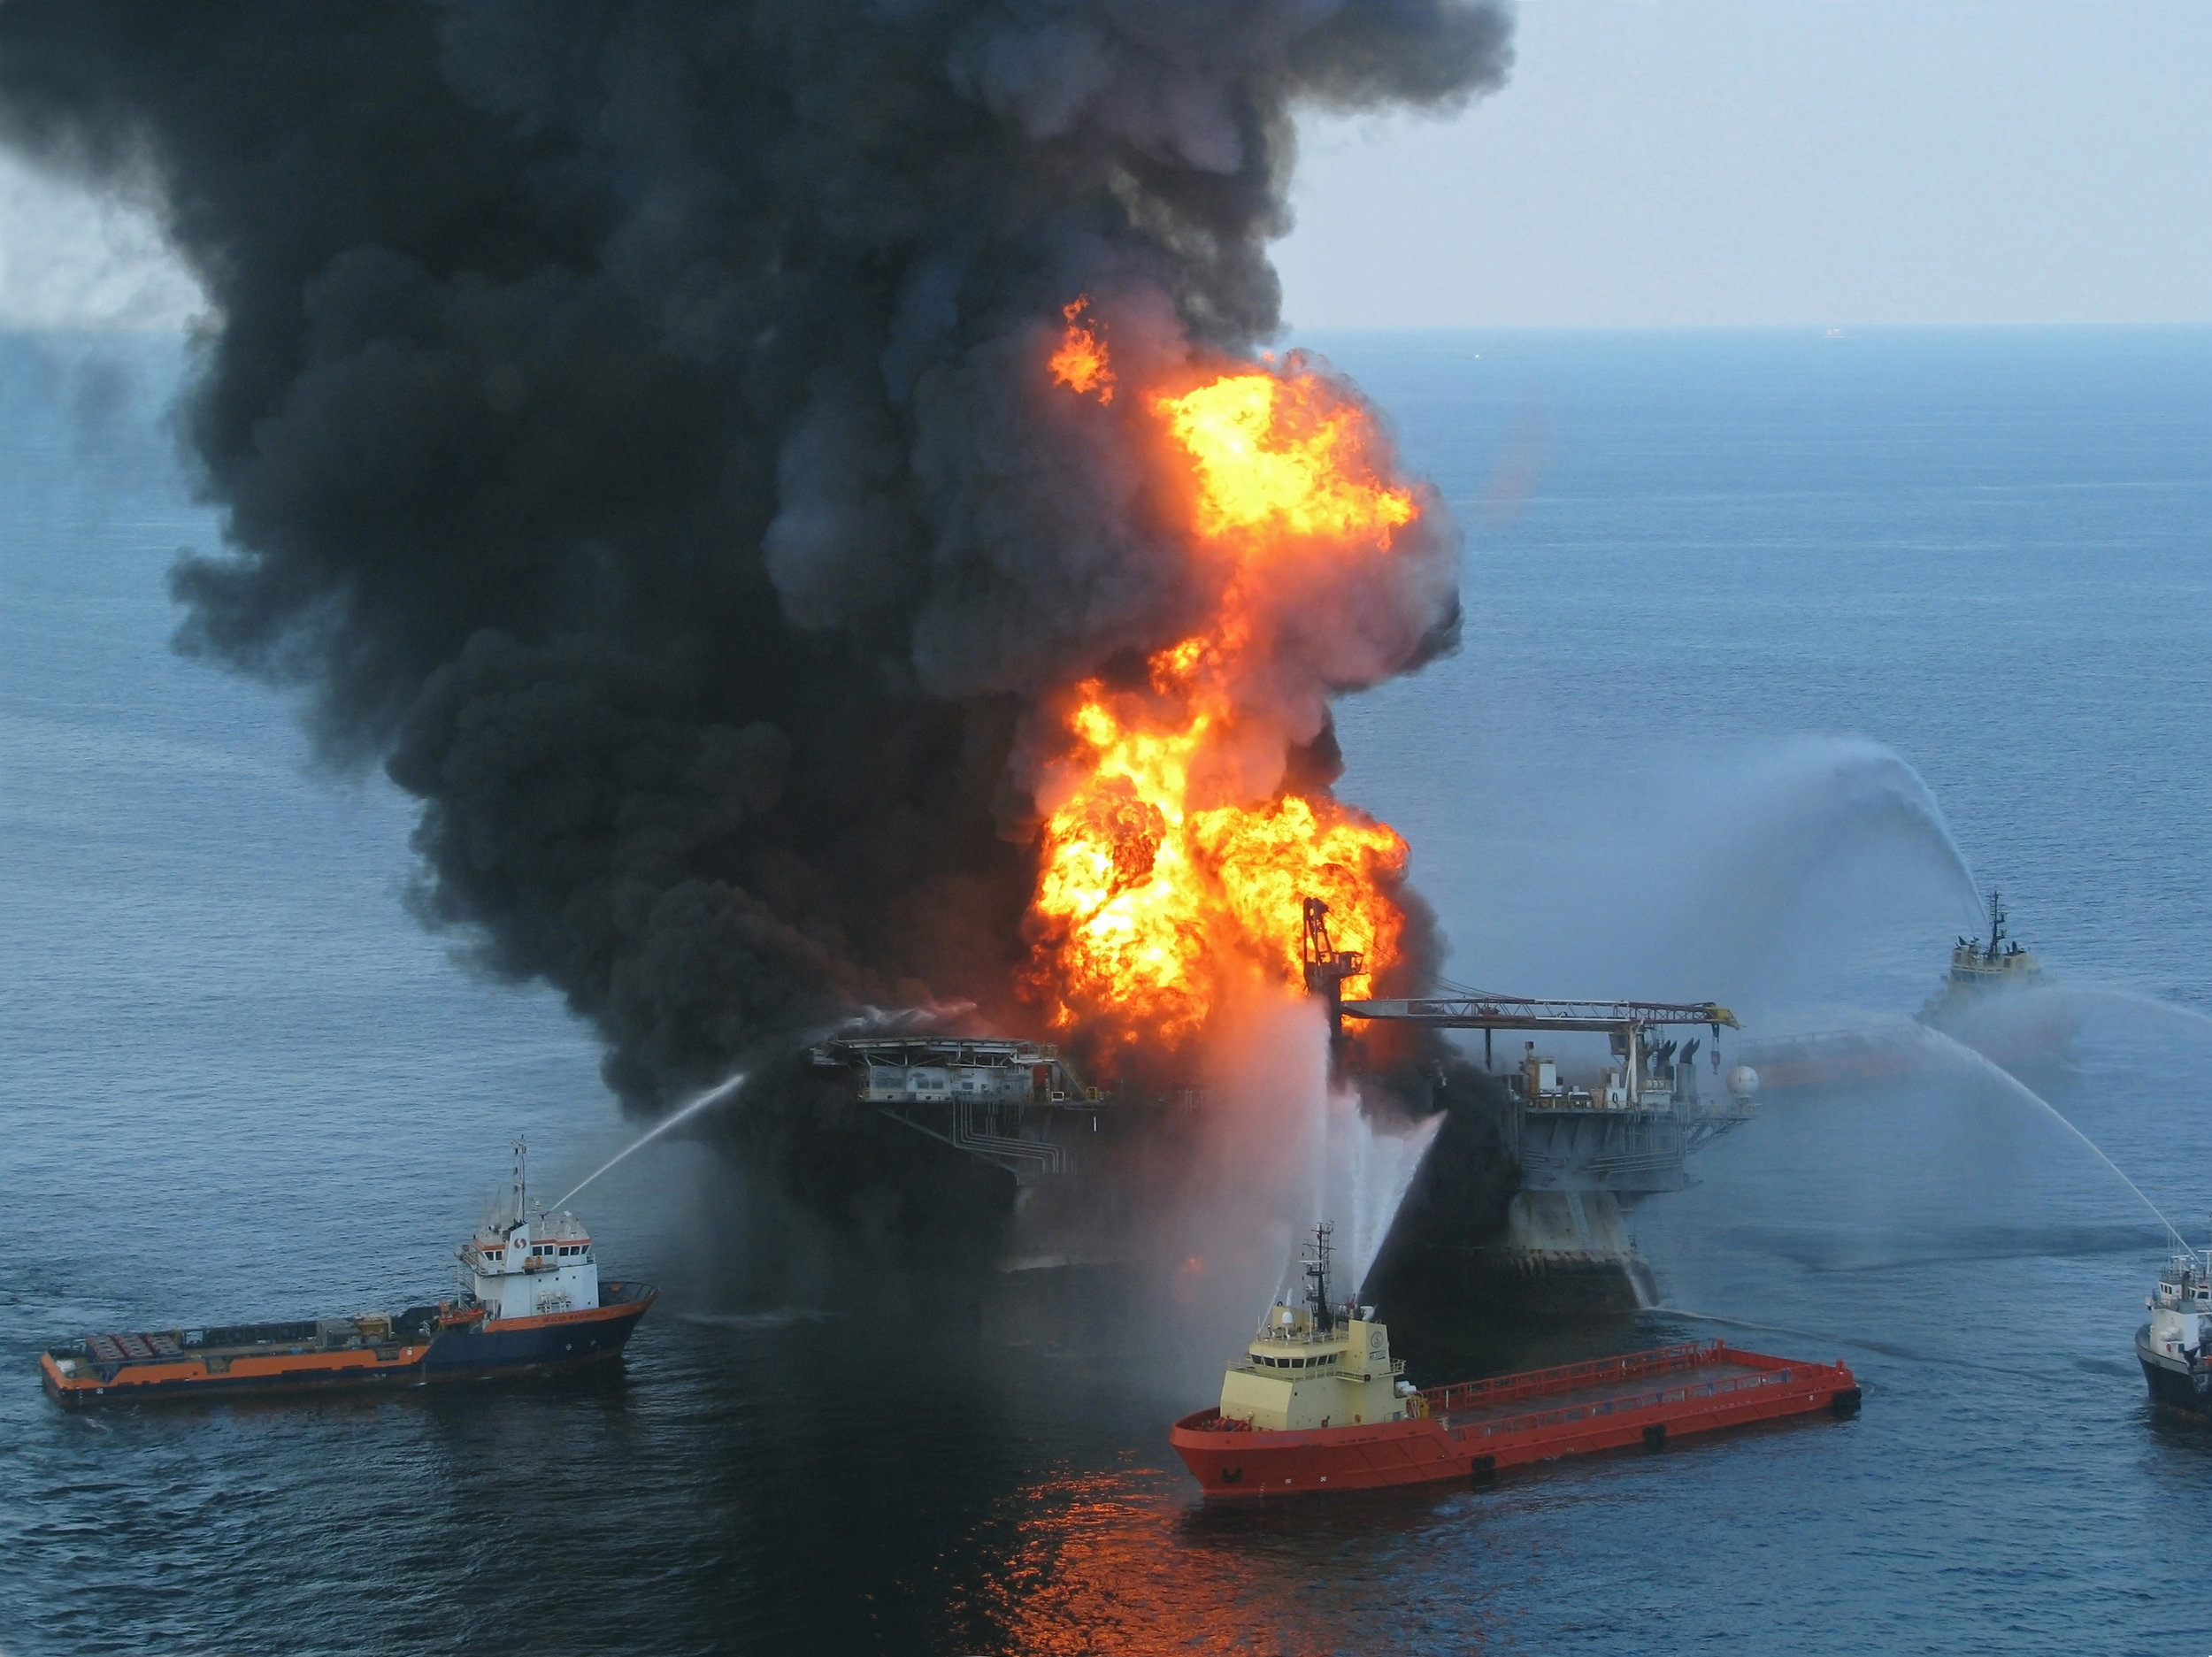 The Deepwater Horizon oil rig burns as oil leaks into the Gulf. (Photo - U.S. Coast Guard)